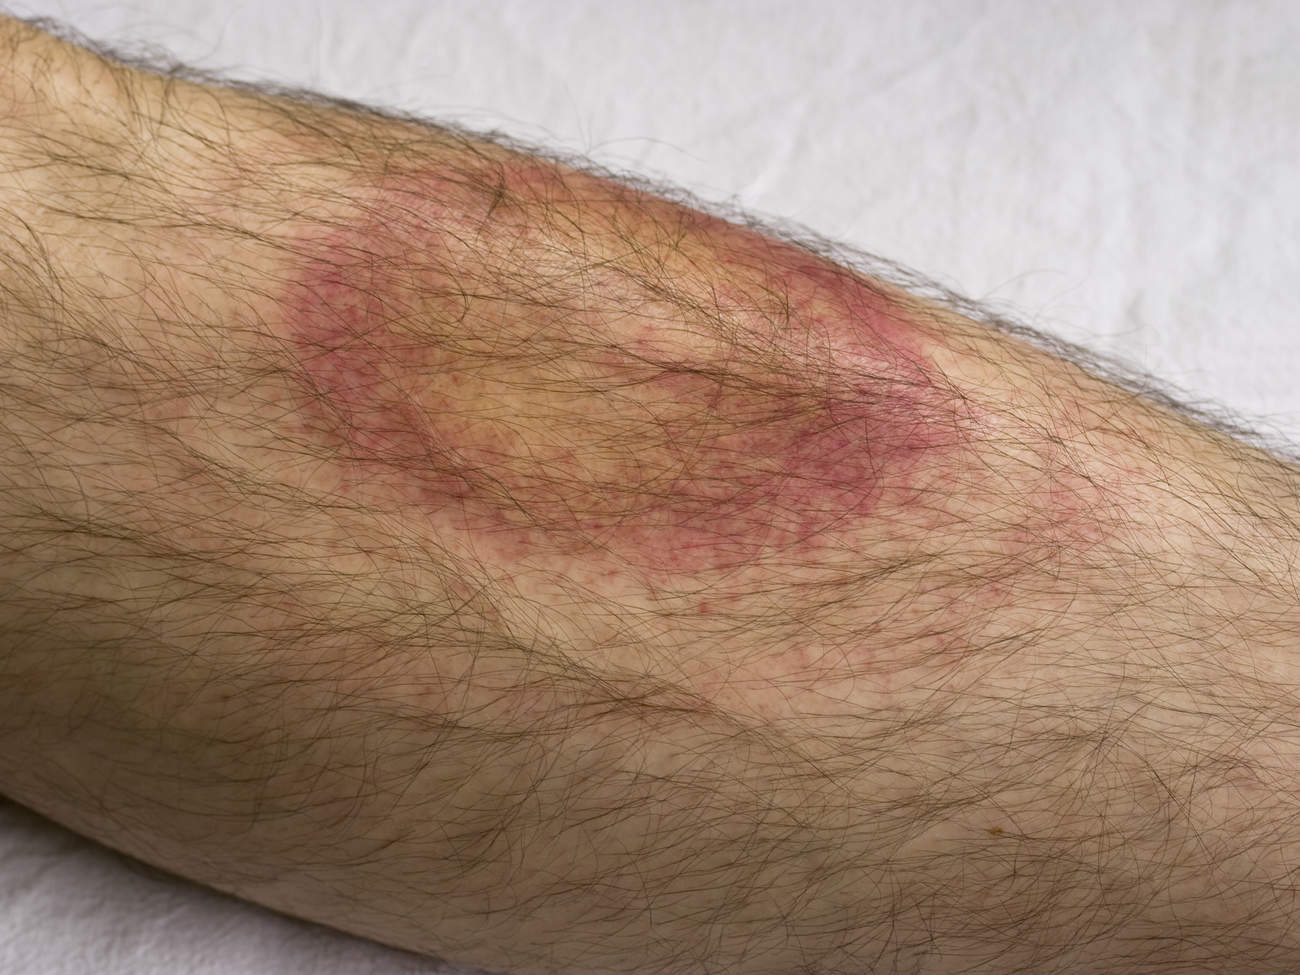 lyme-disease-bullseye-rash-man